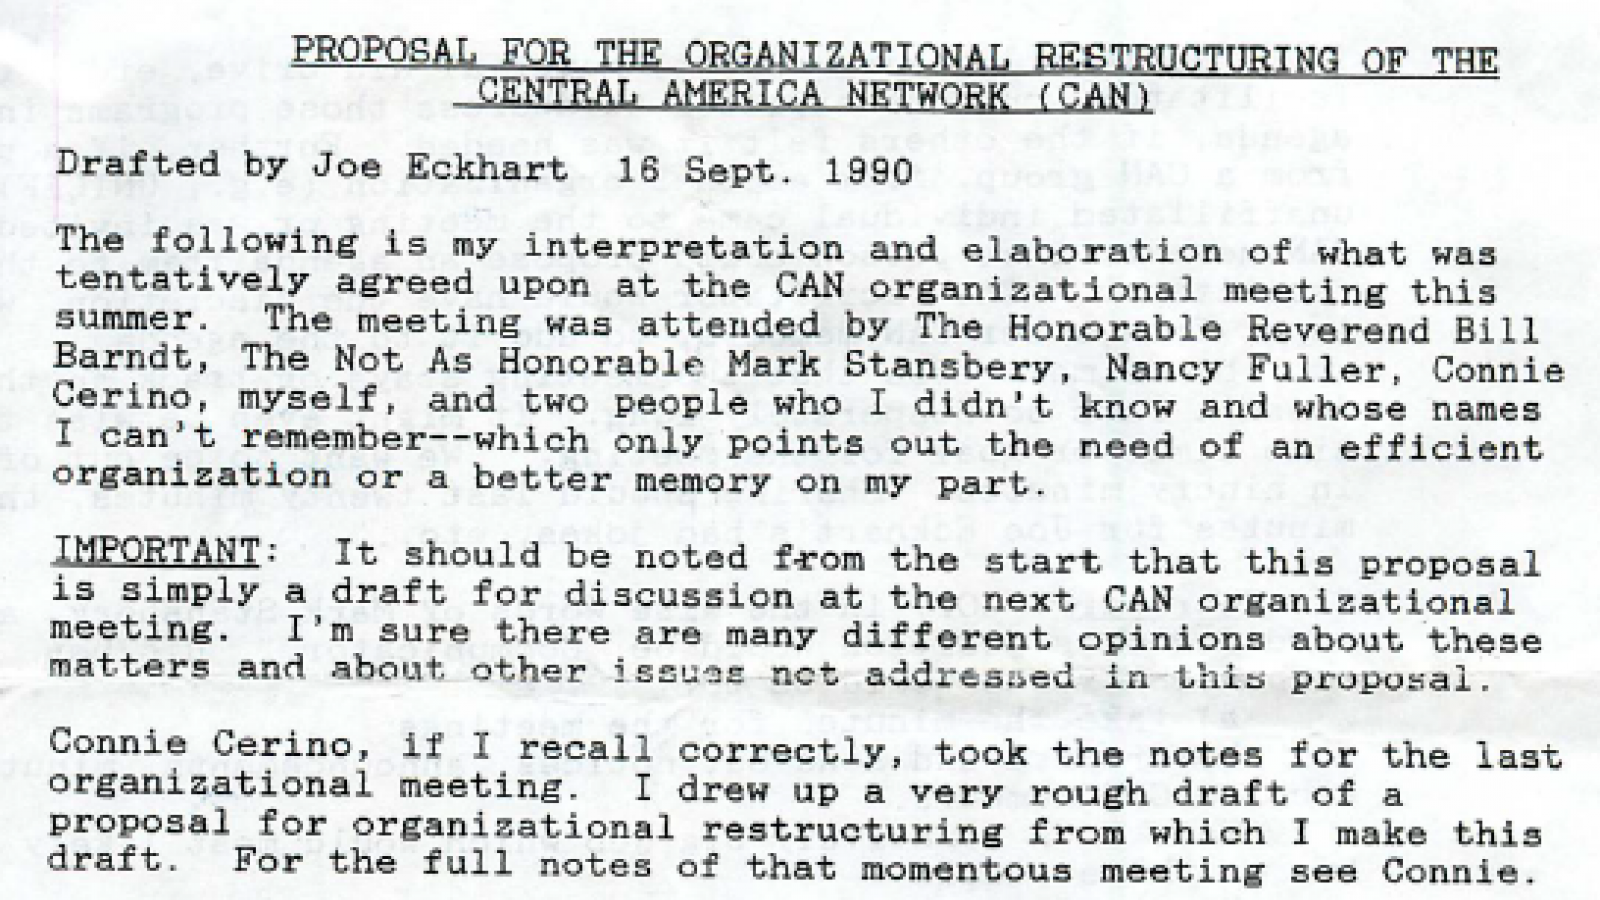 Proposal for Restructuring Central America Network Sept. 16, 1990